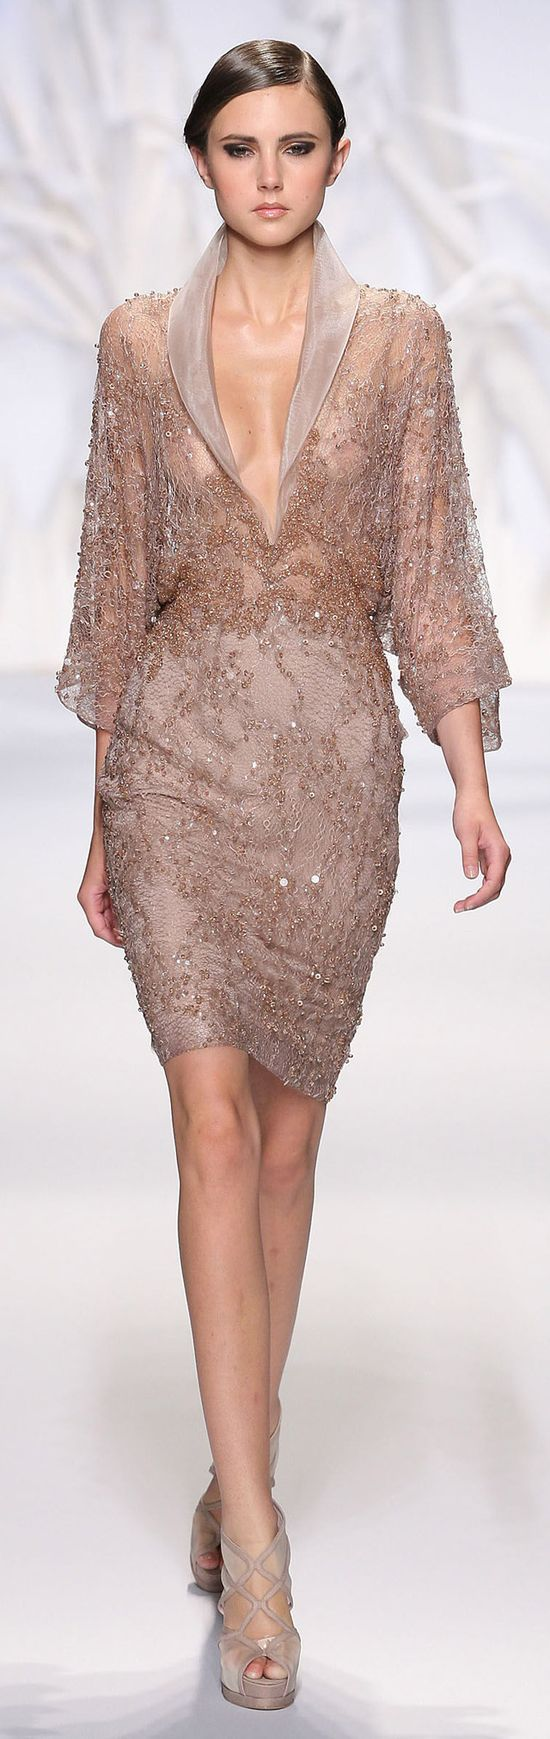 Abed Mahfouz Haute Couture Fall-Winter 2013-2014